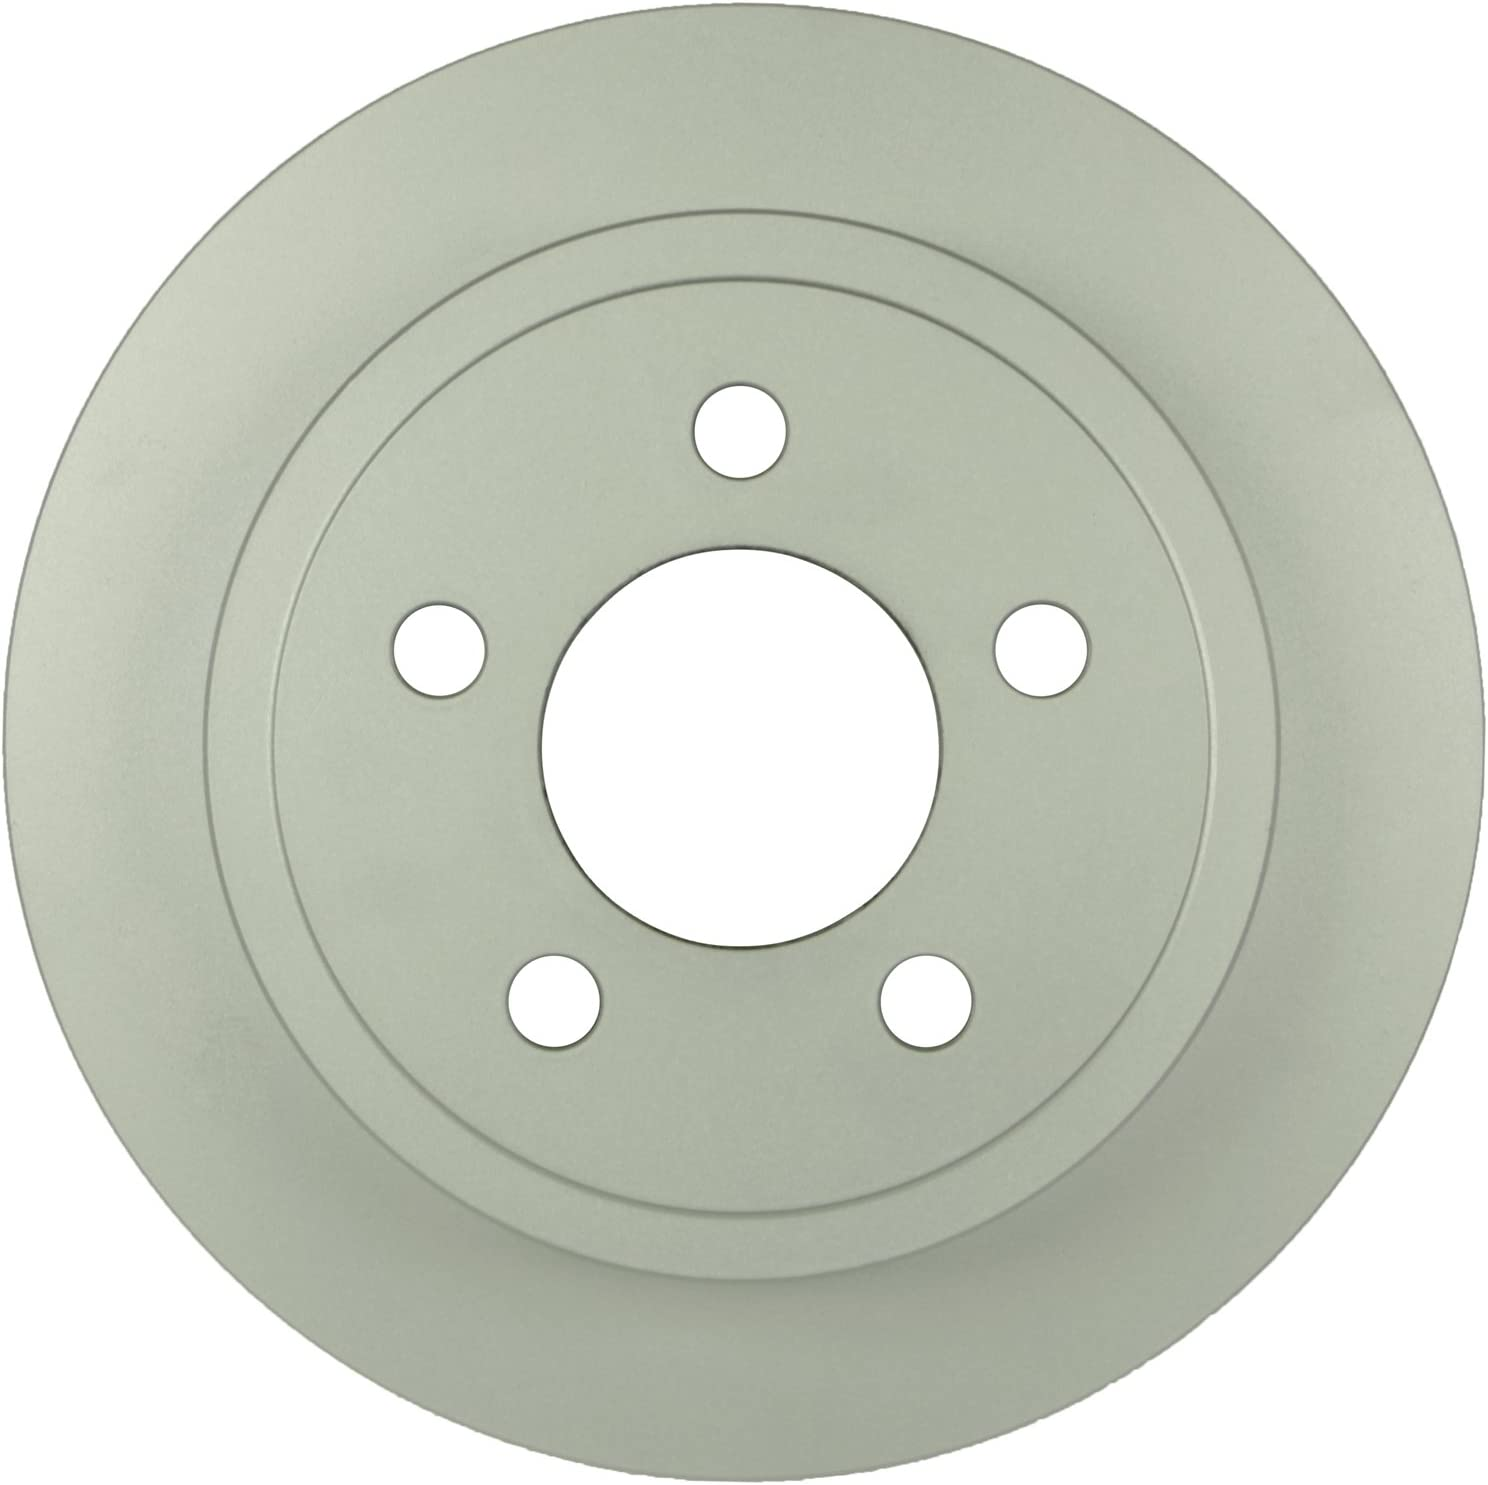 Bosch 16010162 QuietCast Premium Disc Brake Rotor For Jeep: 2003-2007 Liberty, 2003-2006 Wrangler; Rear